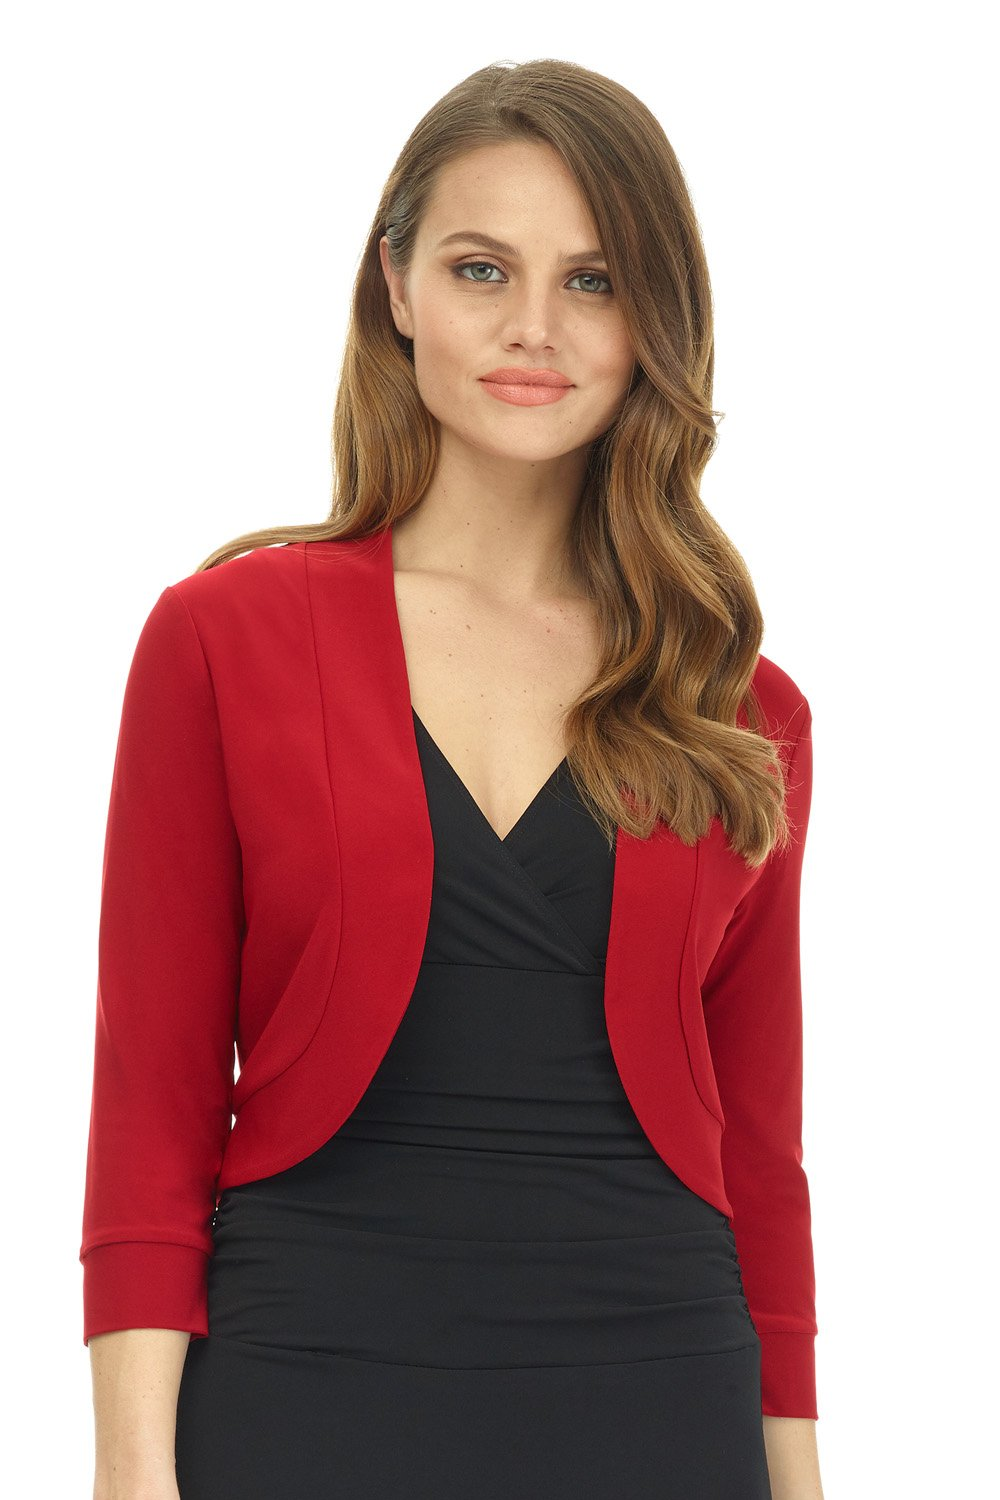 Rekucci Women's Soft Knit Rounded Hem Stretch Bolero Shrug (Medium,Cherry)